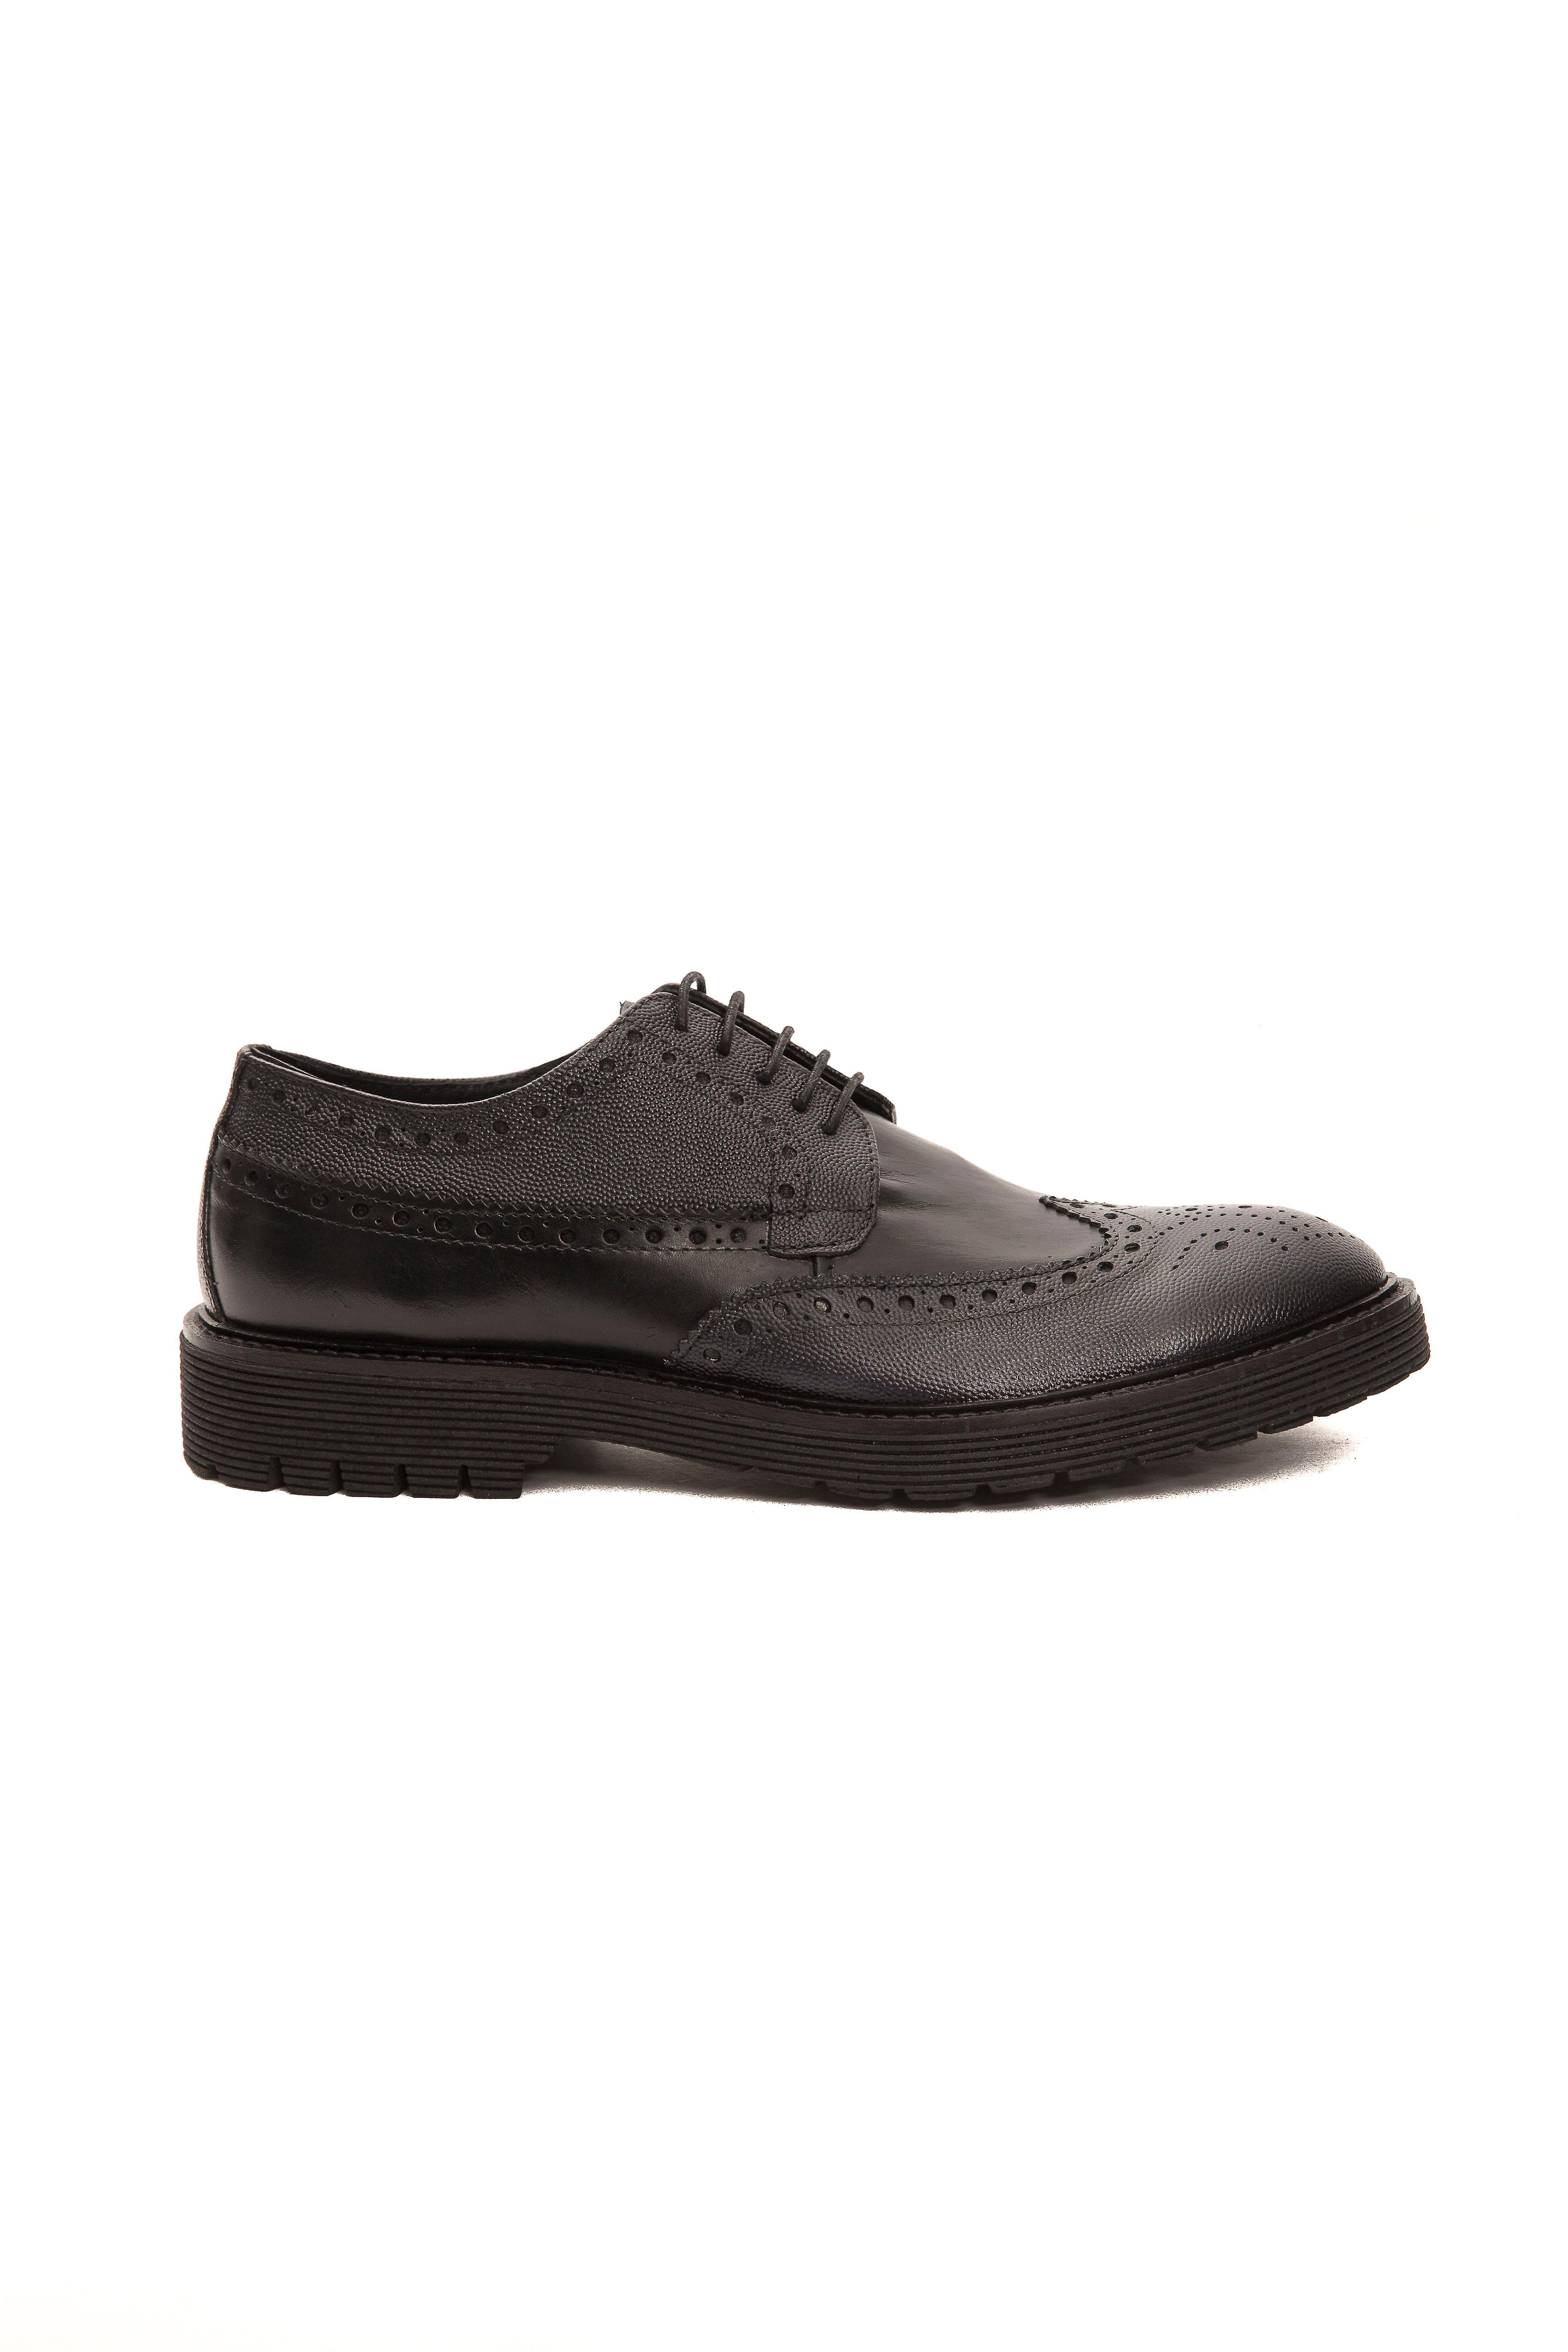 Trussardi Arbasco Black Man Shoes Collection AHqEw5Y